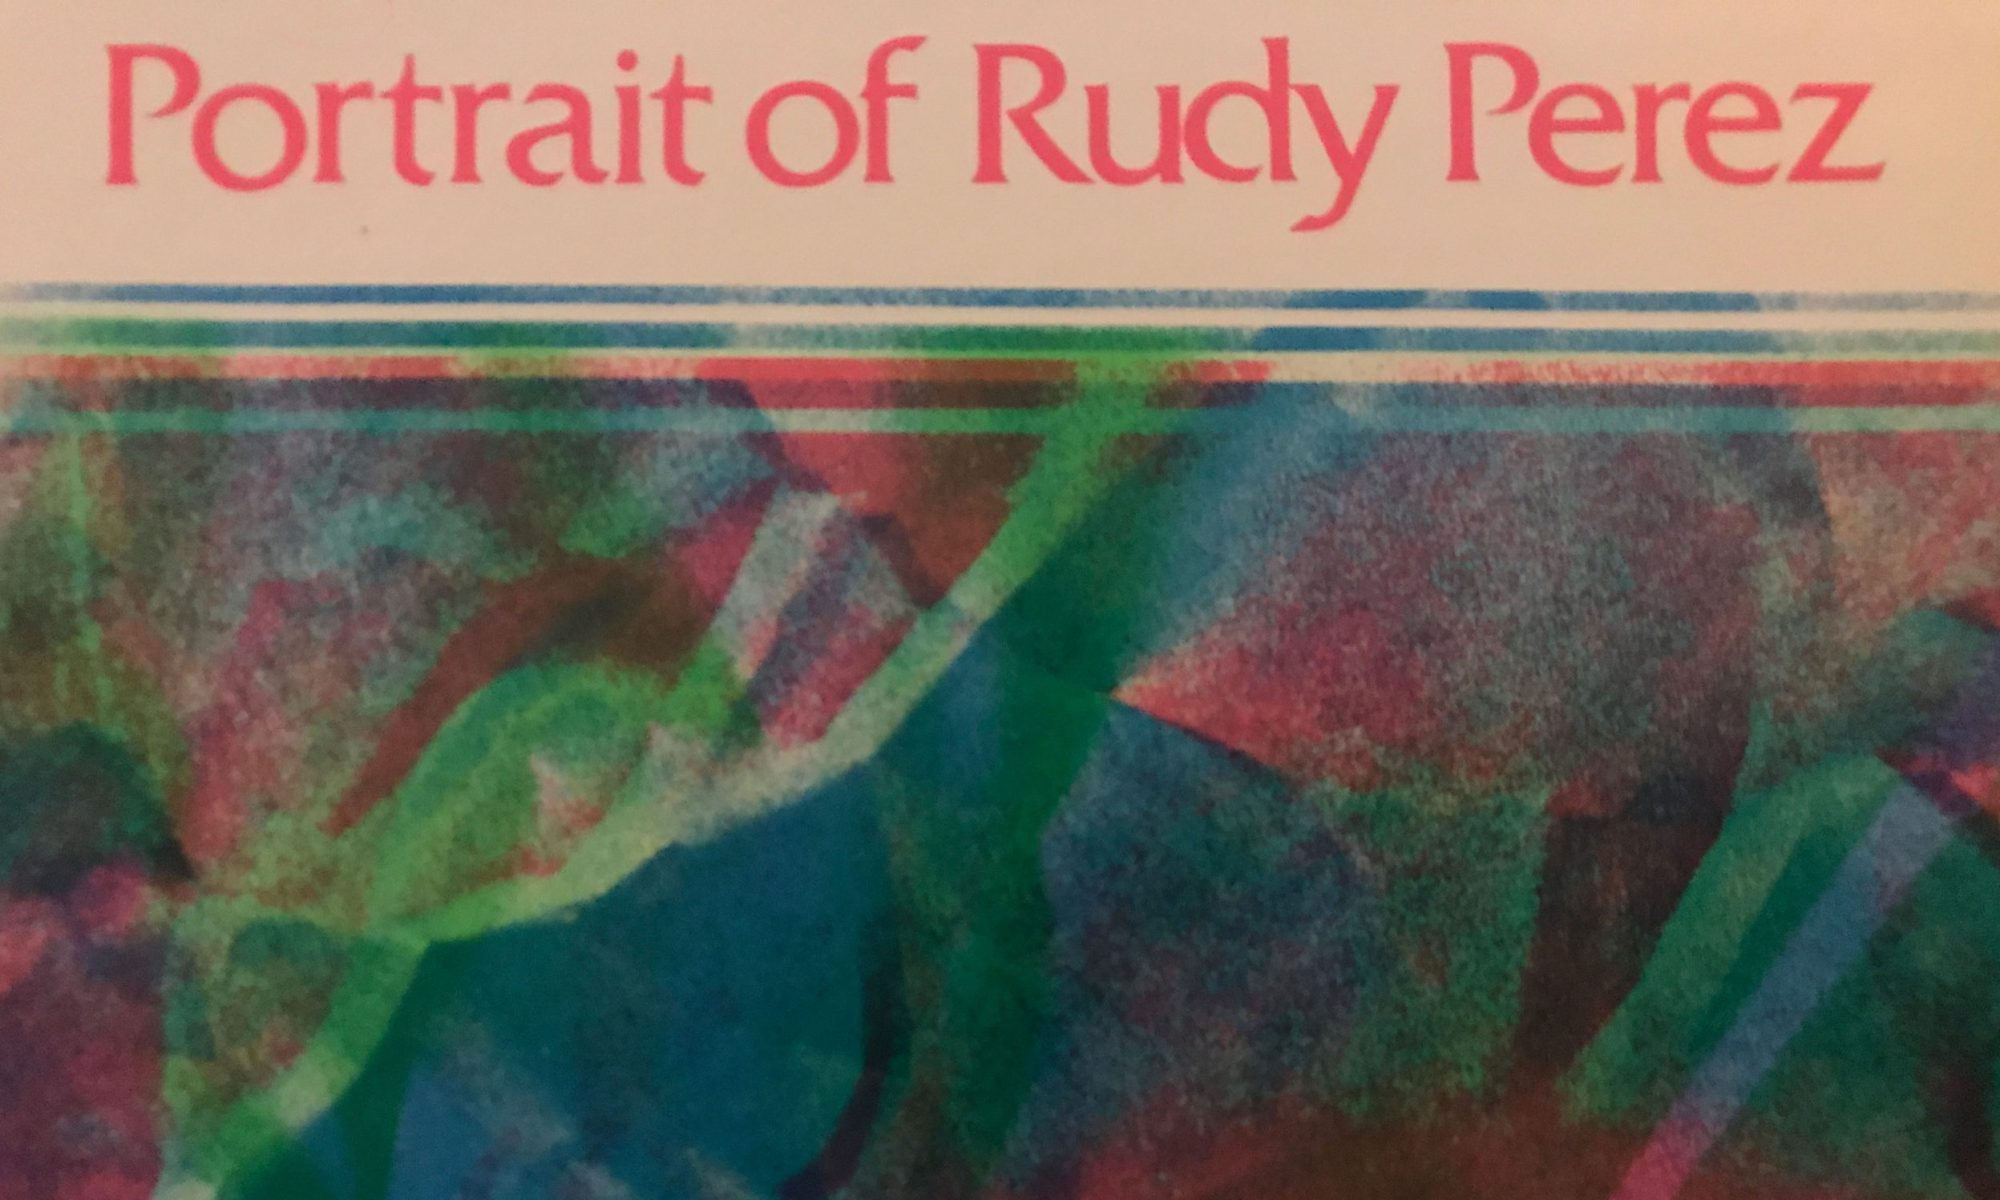 Portrait of Rudy Perez LP cover